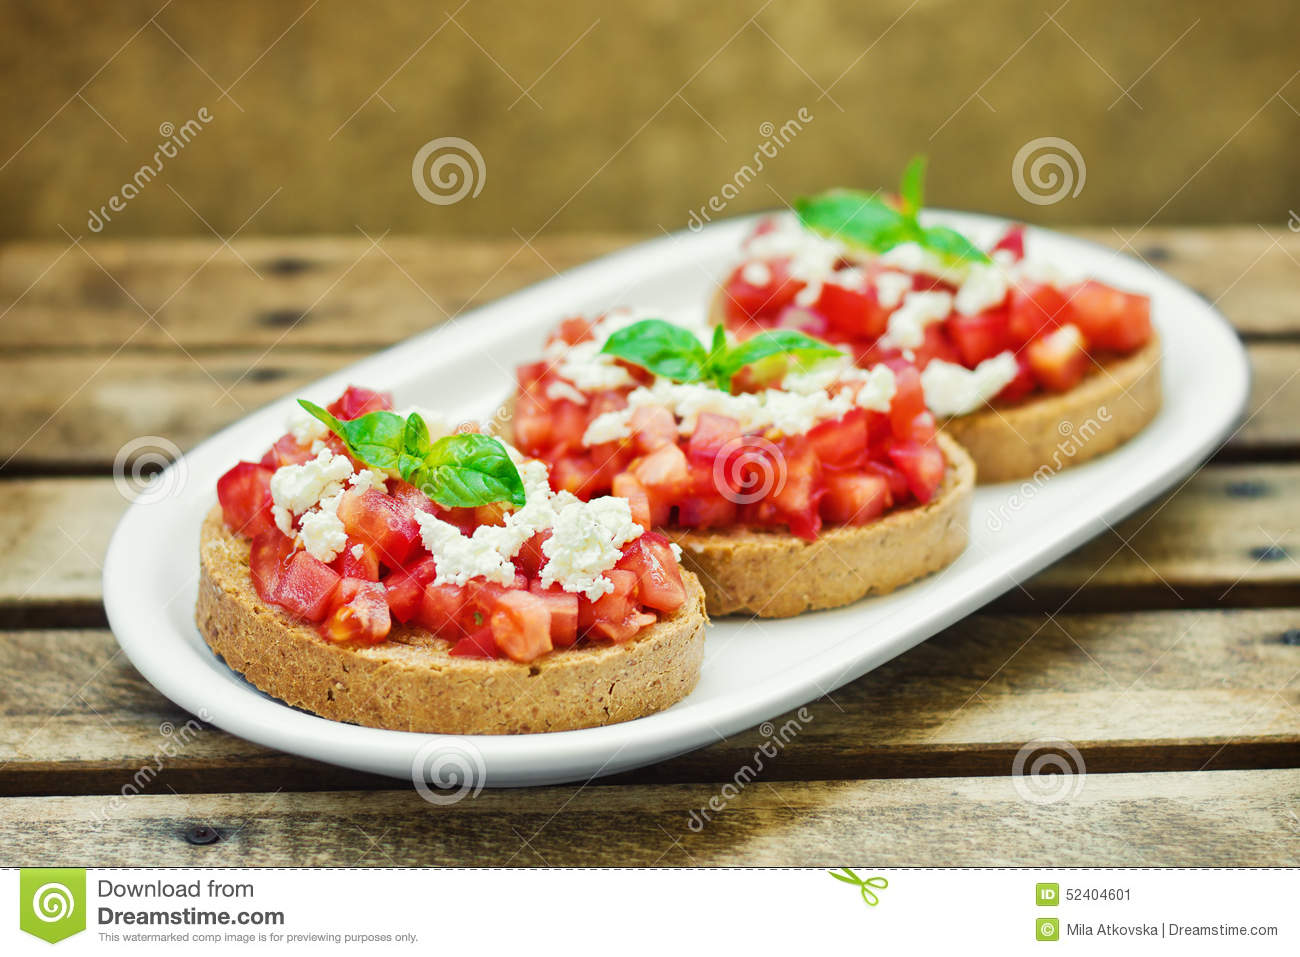 Bruschetta Italian Toasted Garlic Bread With Tomato Cheese Stock Image Image Of Antipasto Garlic 52404601